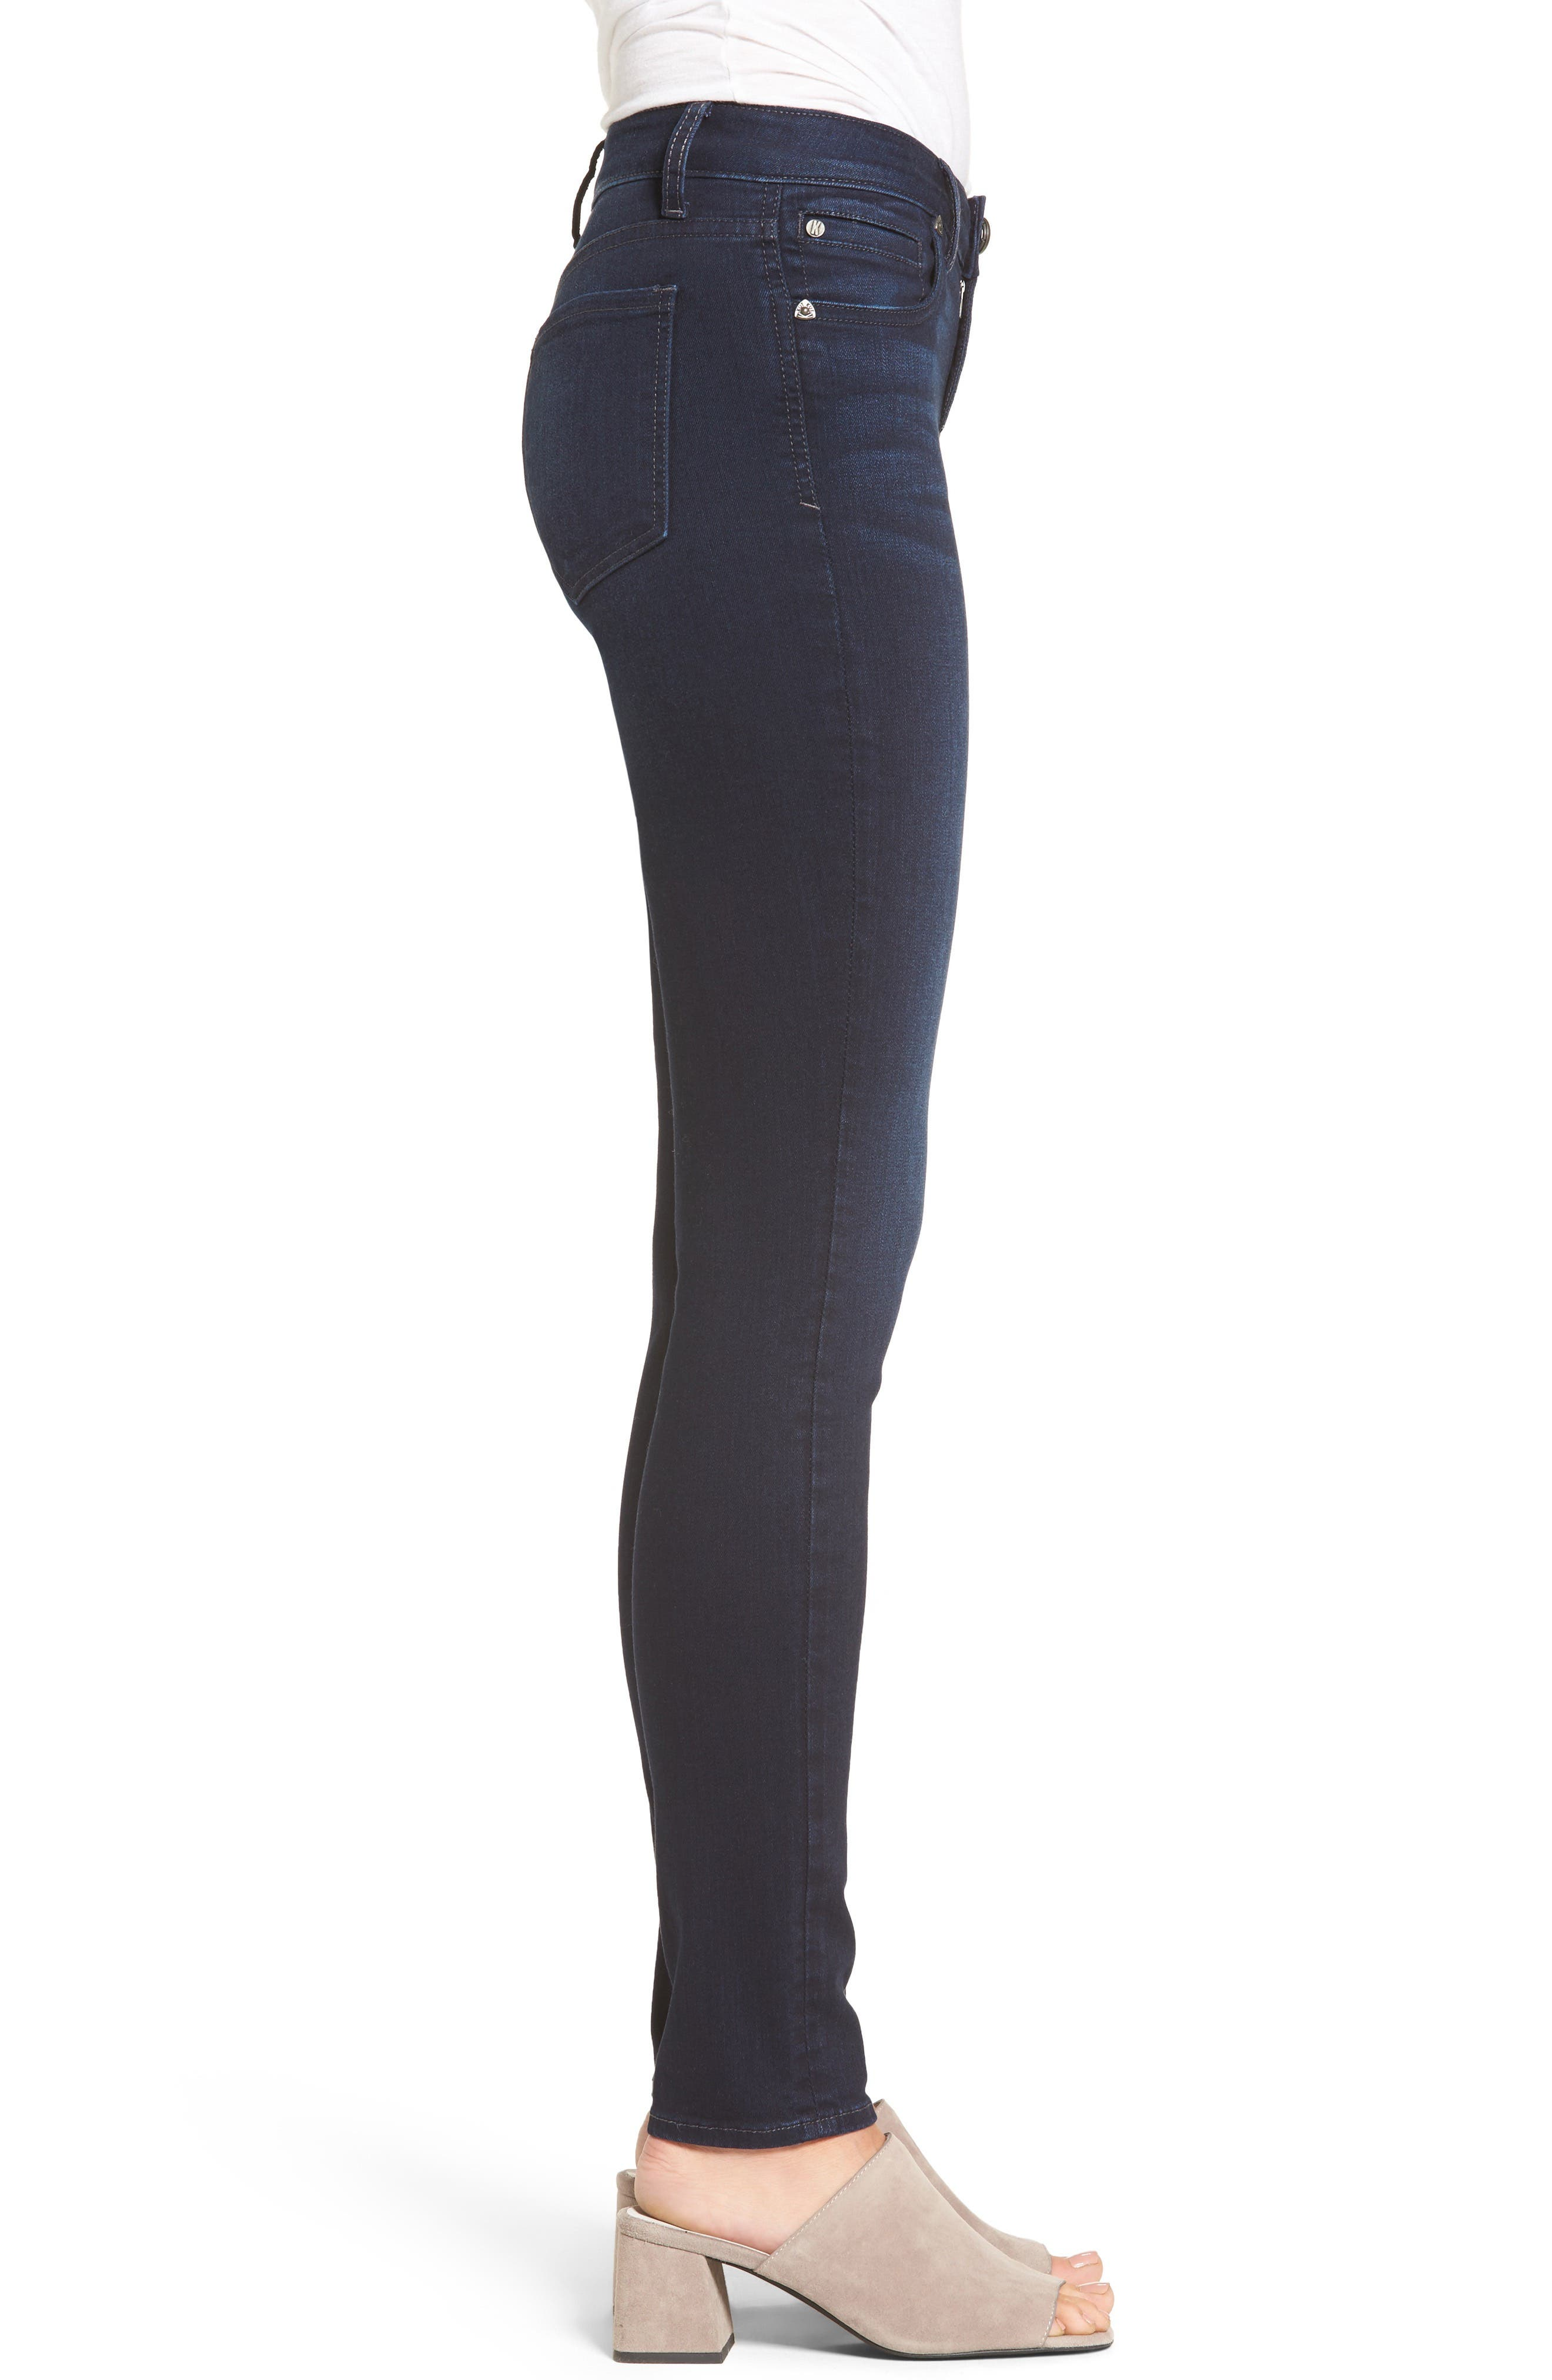 Alternate Image 3  - KUT from the Kloth Diana Stretch Skinny Jeans (Gained) (Regular & Petite)